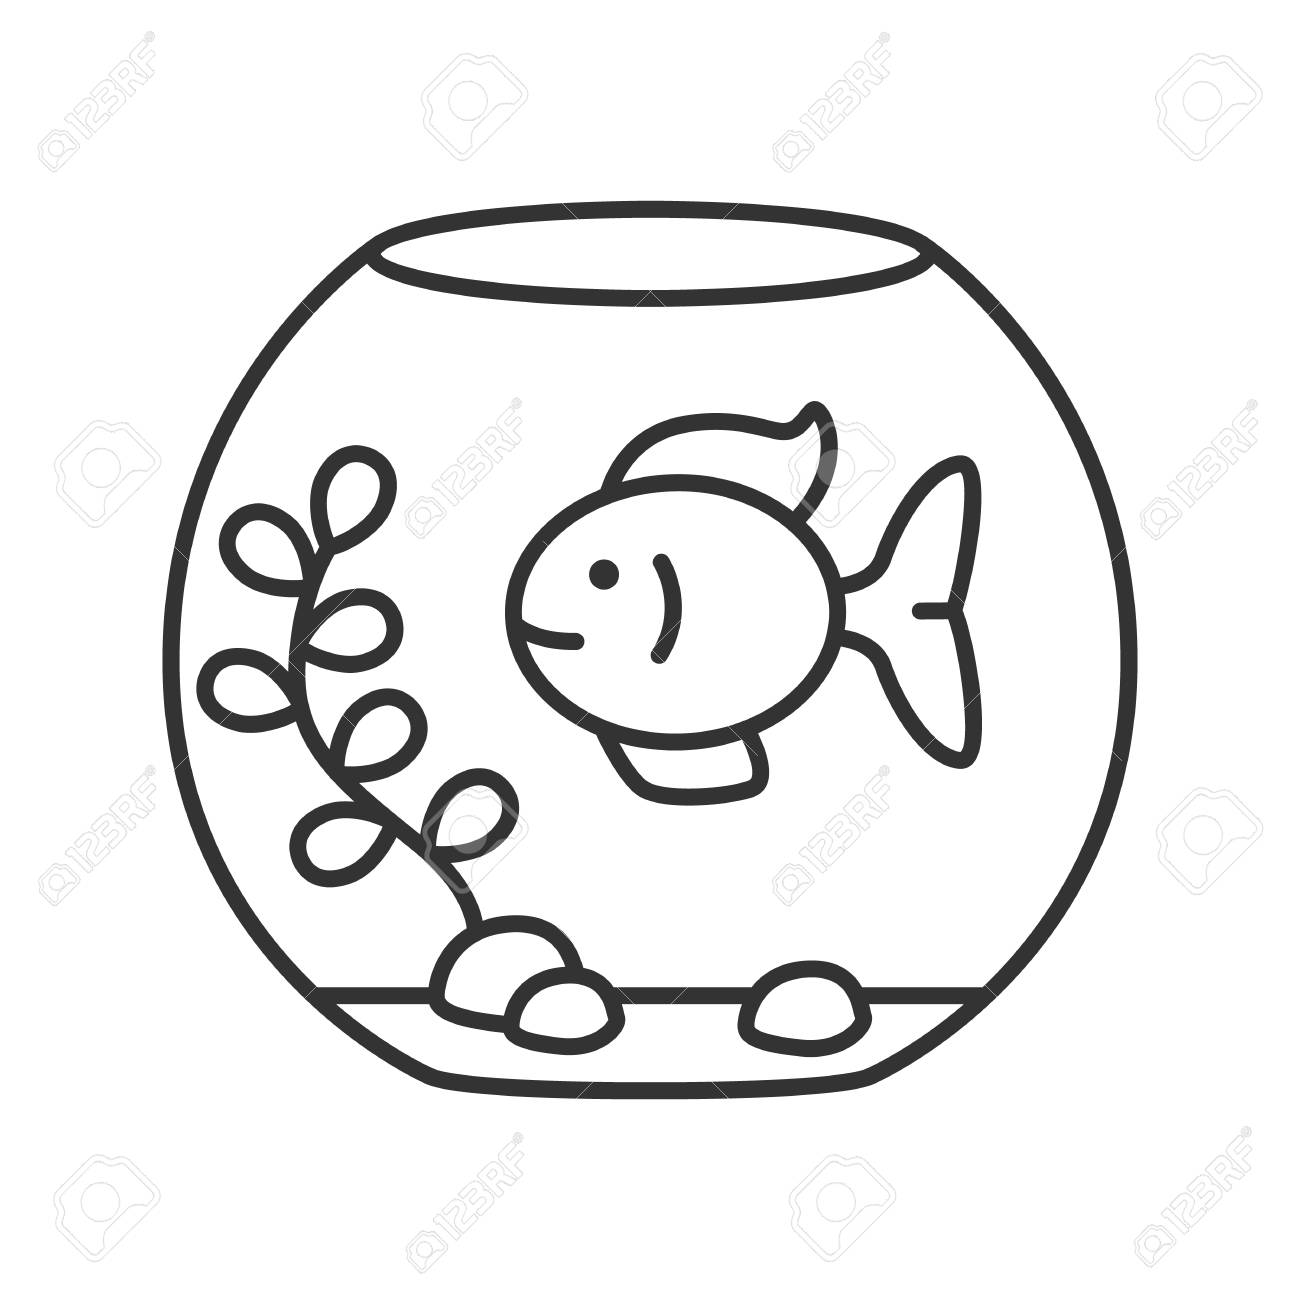 Aquarium Linear Icon Thin Line Illustration Fishkeeping Fish Royalty Free Cliparts Vectors And Stock Illustration Image 99459557